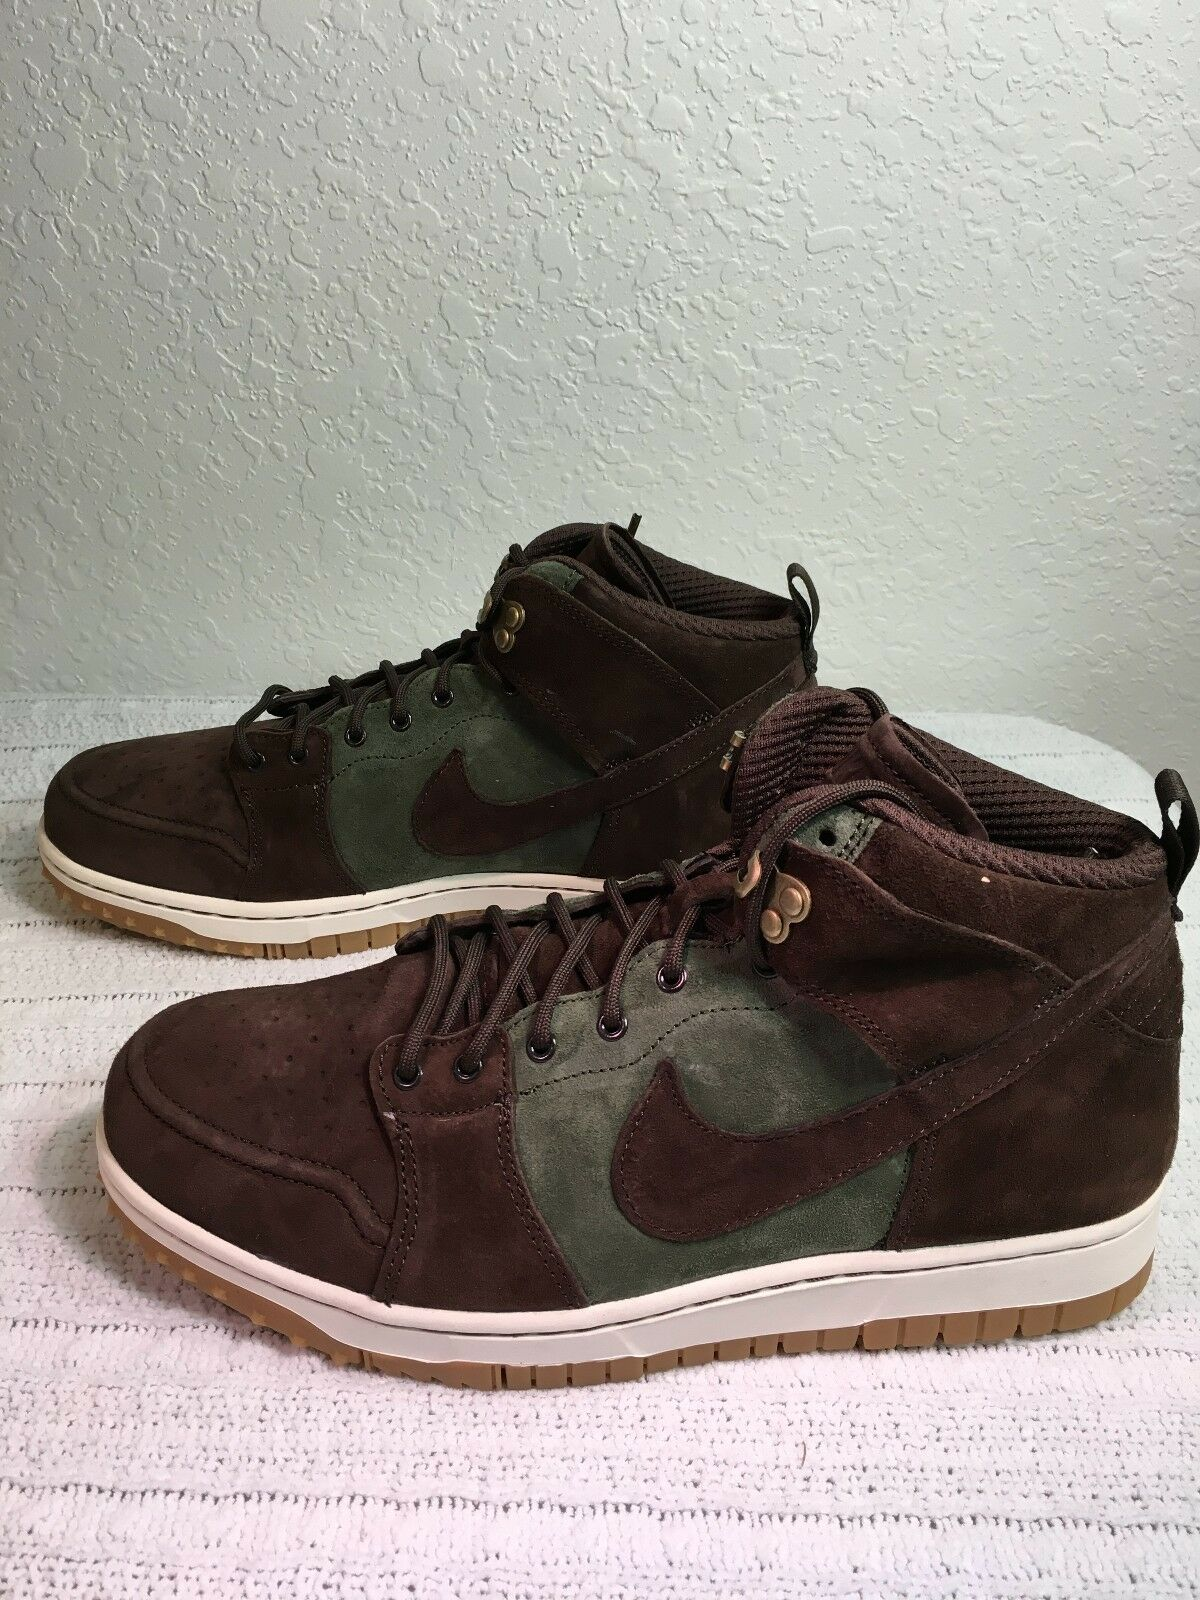 NIKE DUNK 10 CMFT WB ARMY OLIVE/BROWN MEN SIZE 10 DUNK NEW 805995 300 ec161f